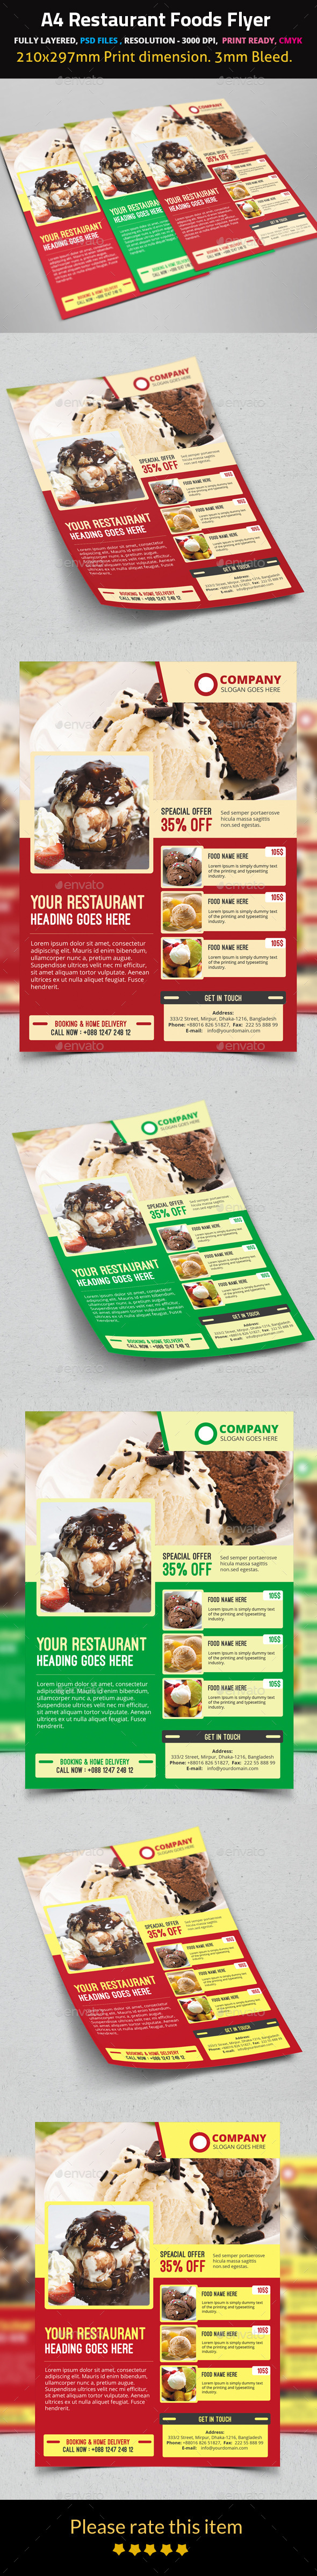 GraphicRiver Restaurant Foods Flyer 9558118